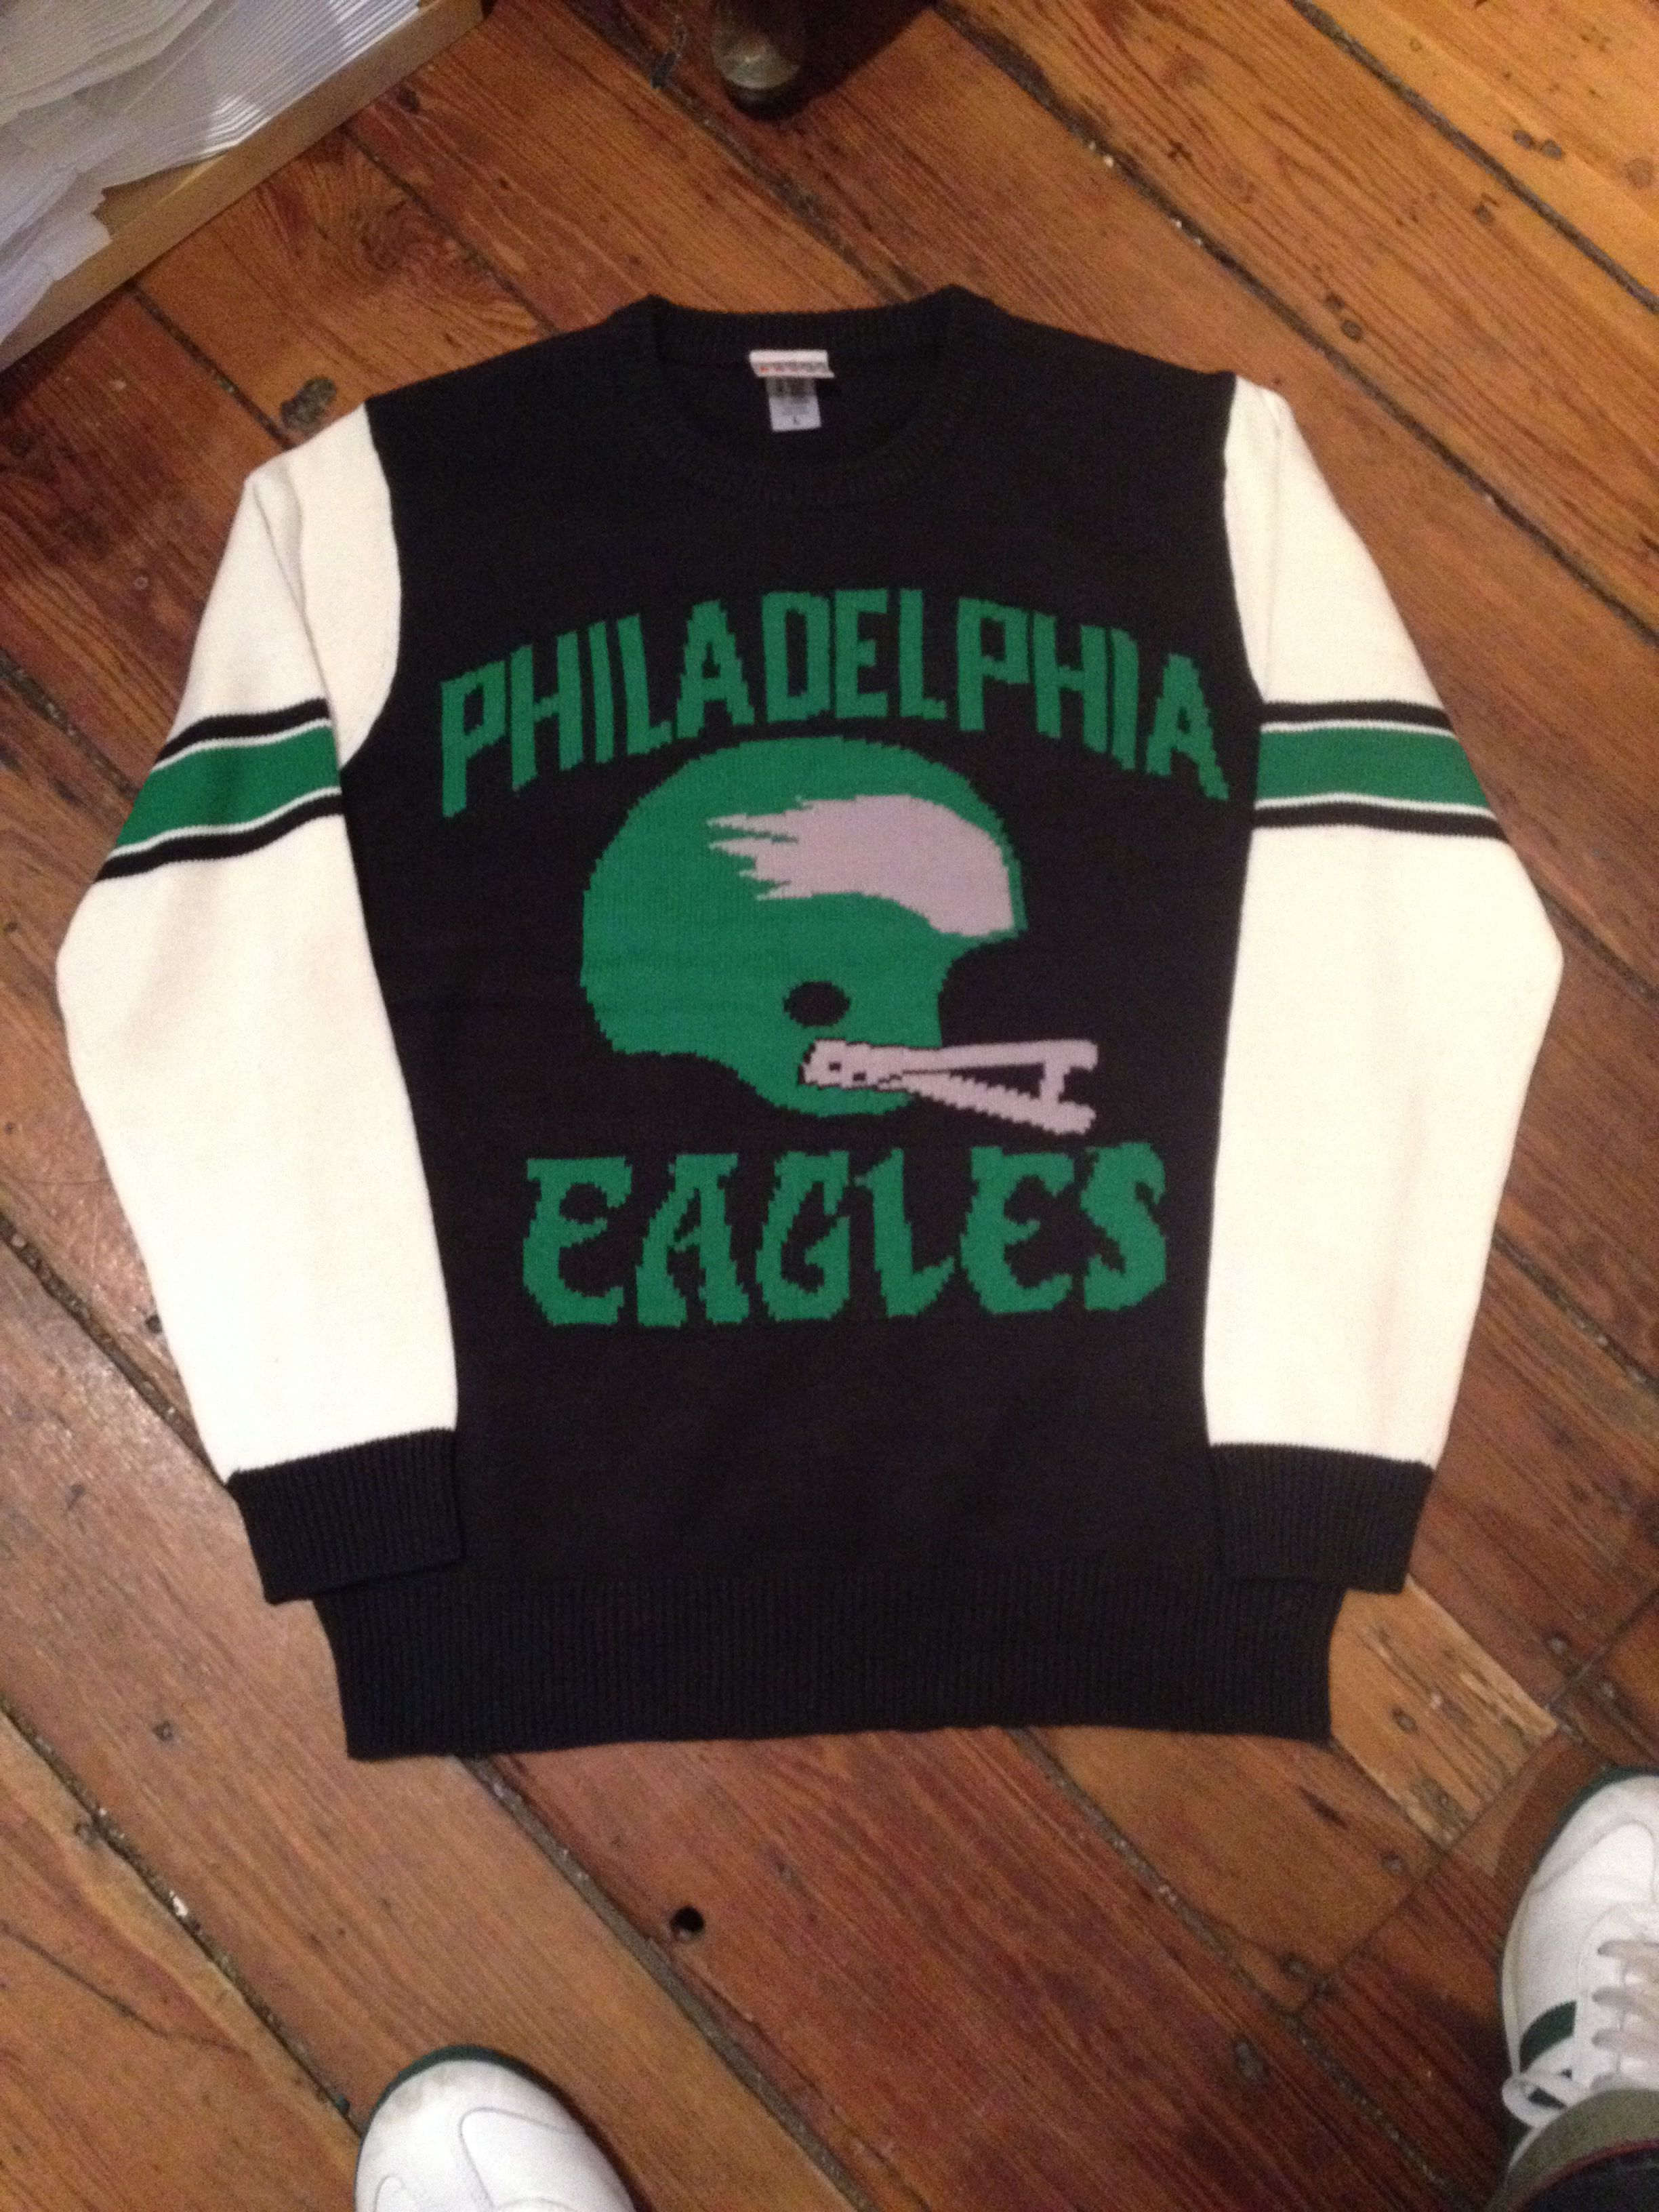 deb6e5426 Retro Philadelphia Eagles Junk Food Pop-Pop sweater (ala Silver Linings  Playbook).